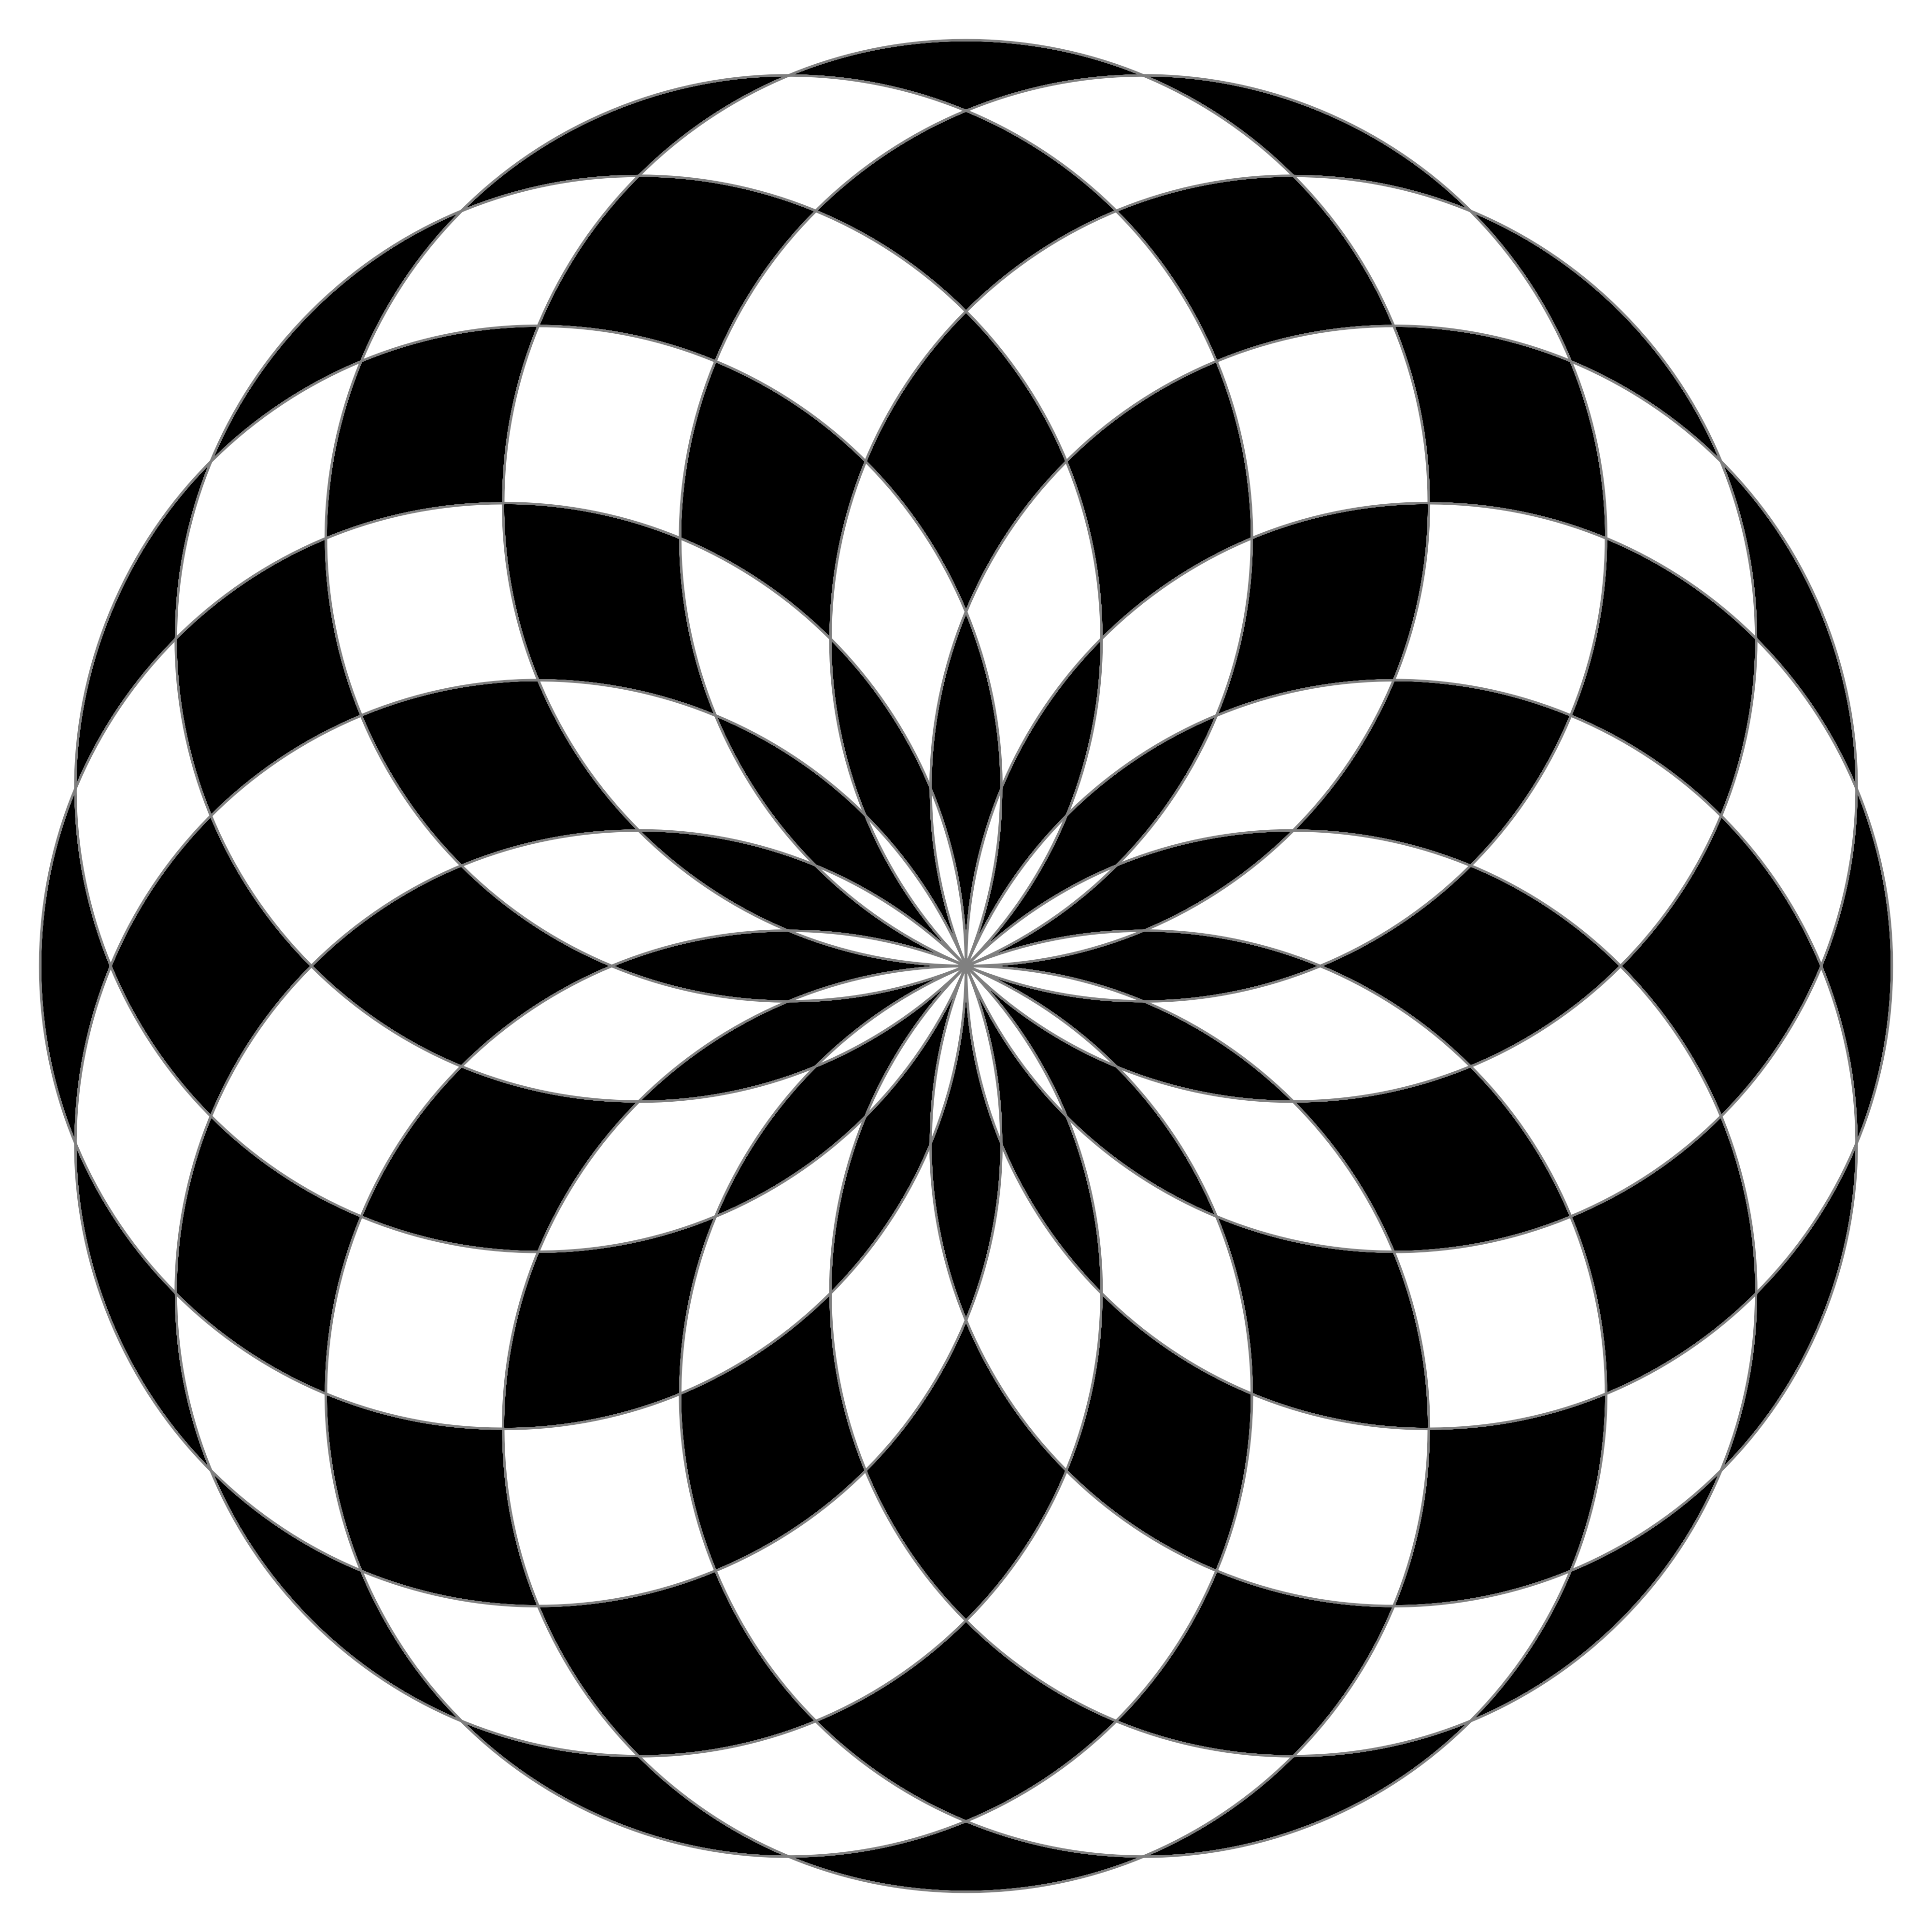 circle design 16 circle black white fill by 10binary on deviantart 112